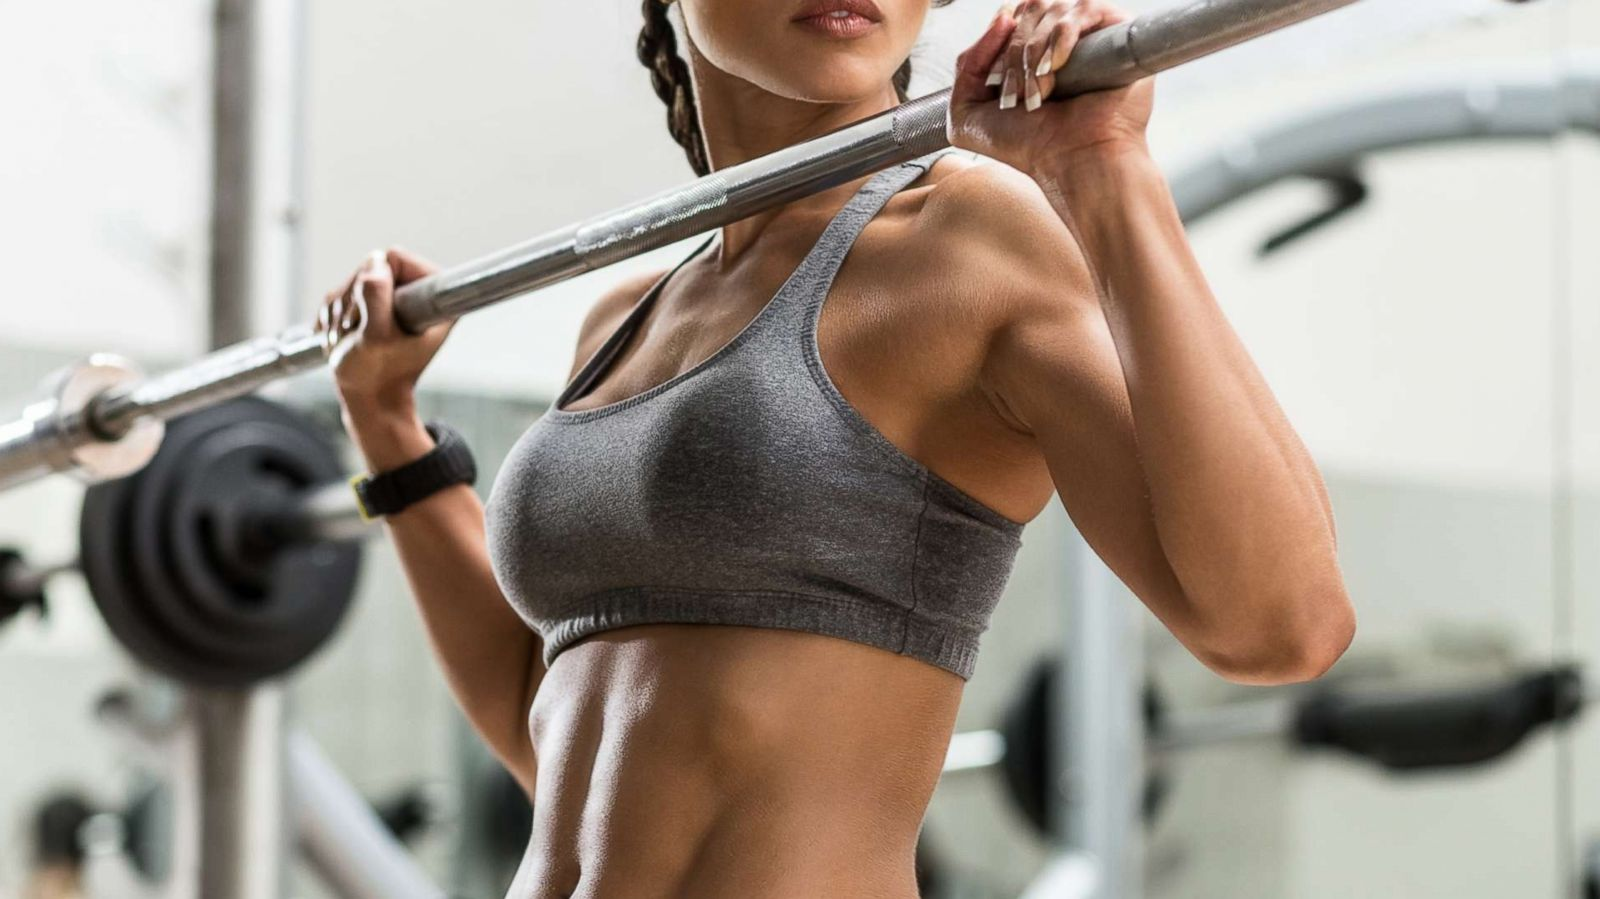 What S The New Ideal Female Body Type Now It S Thin And Muscular Research Shows Gma Women run to stay fit, compete in races or for the sheer love of running. what s the new ideal female body type